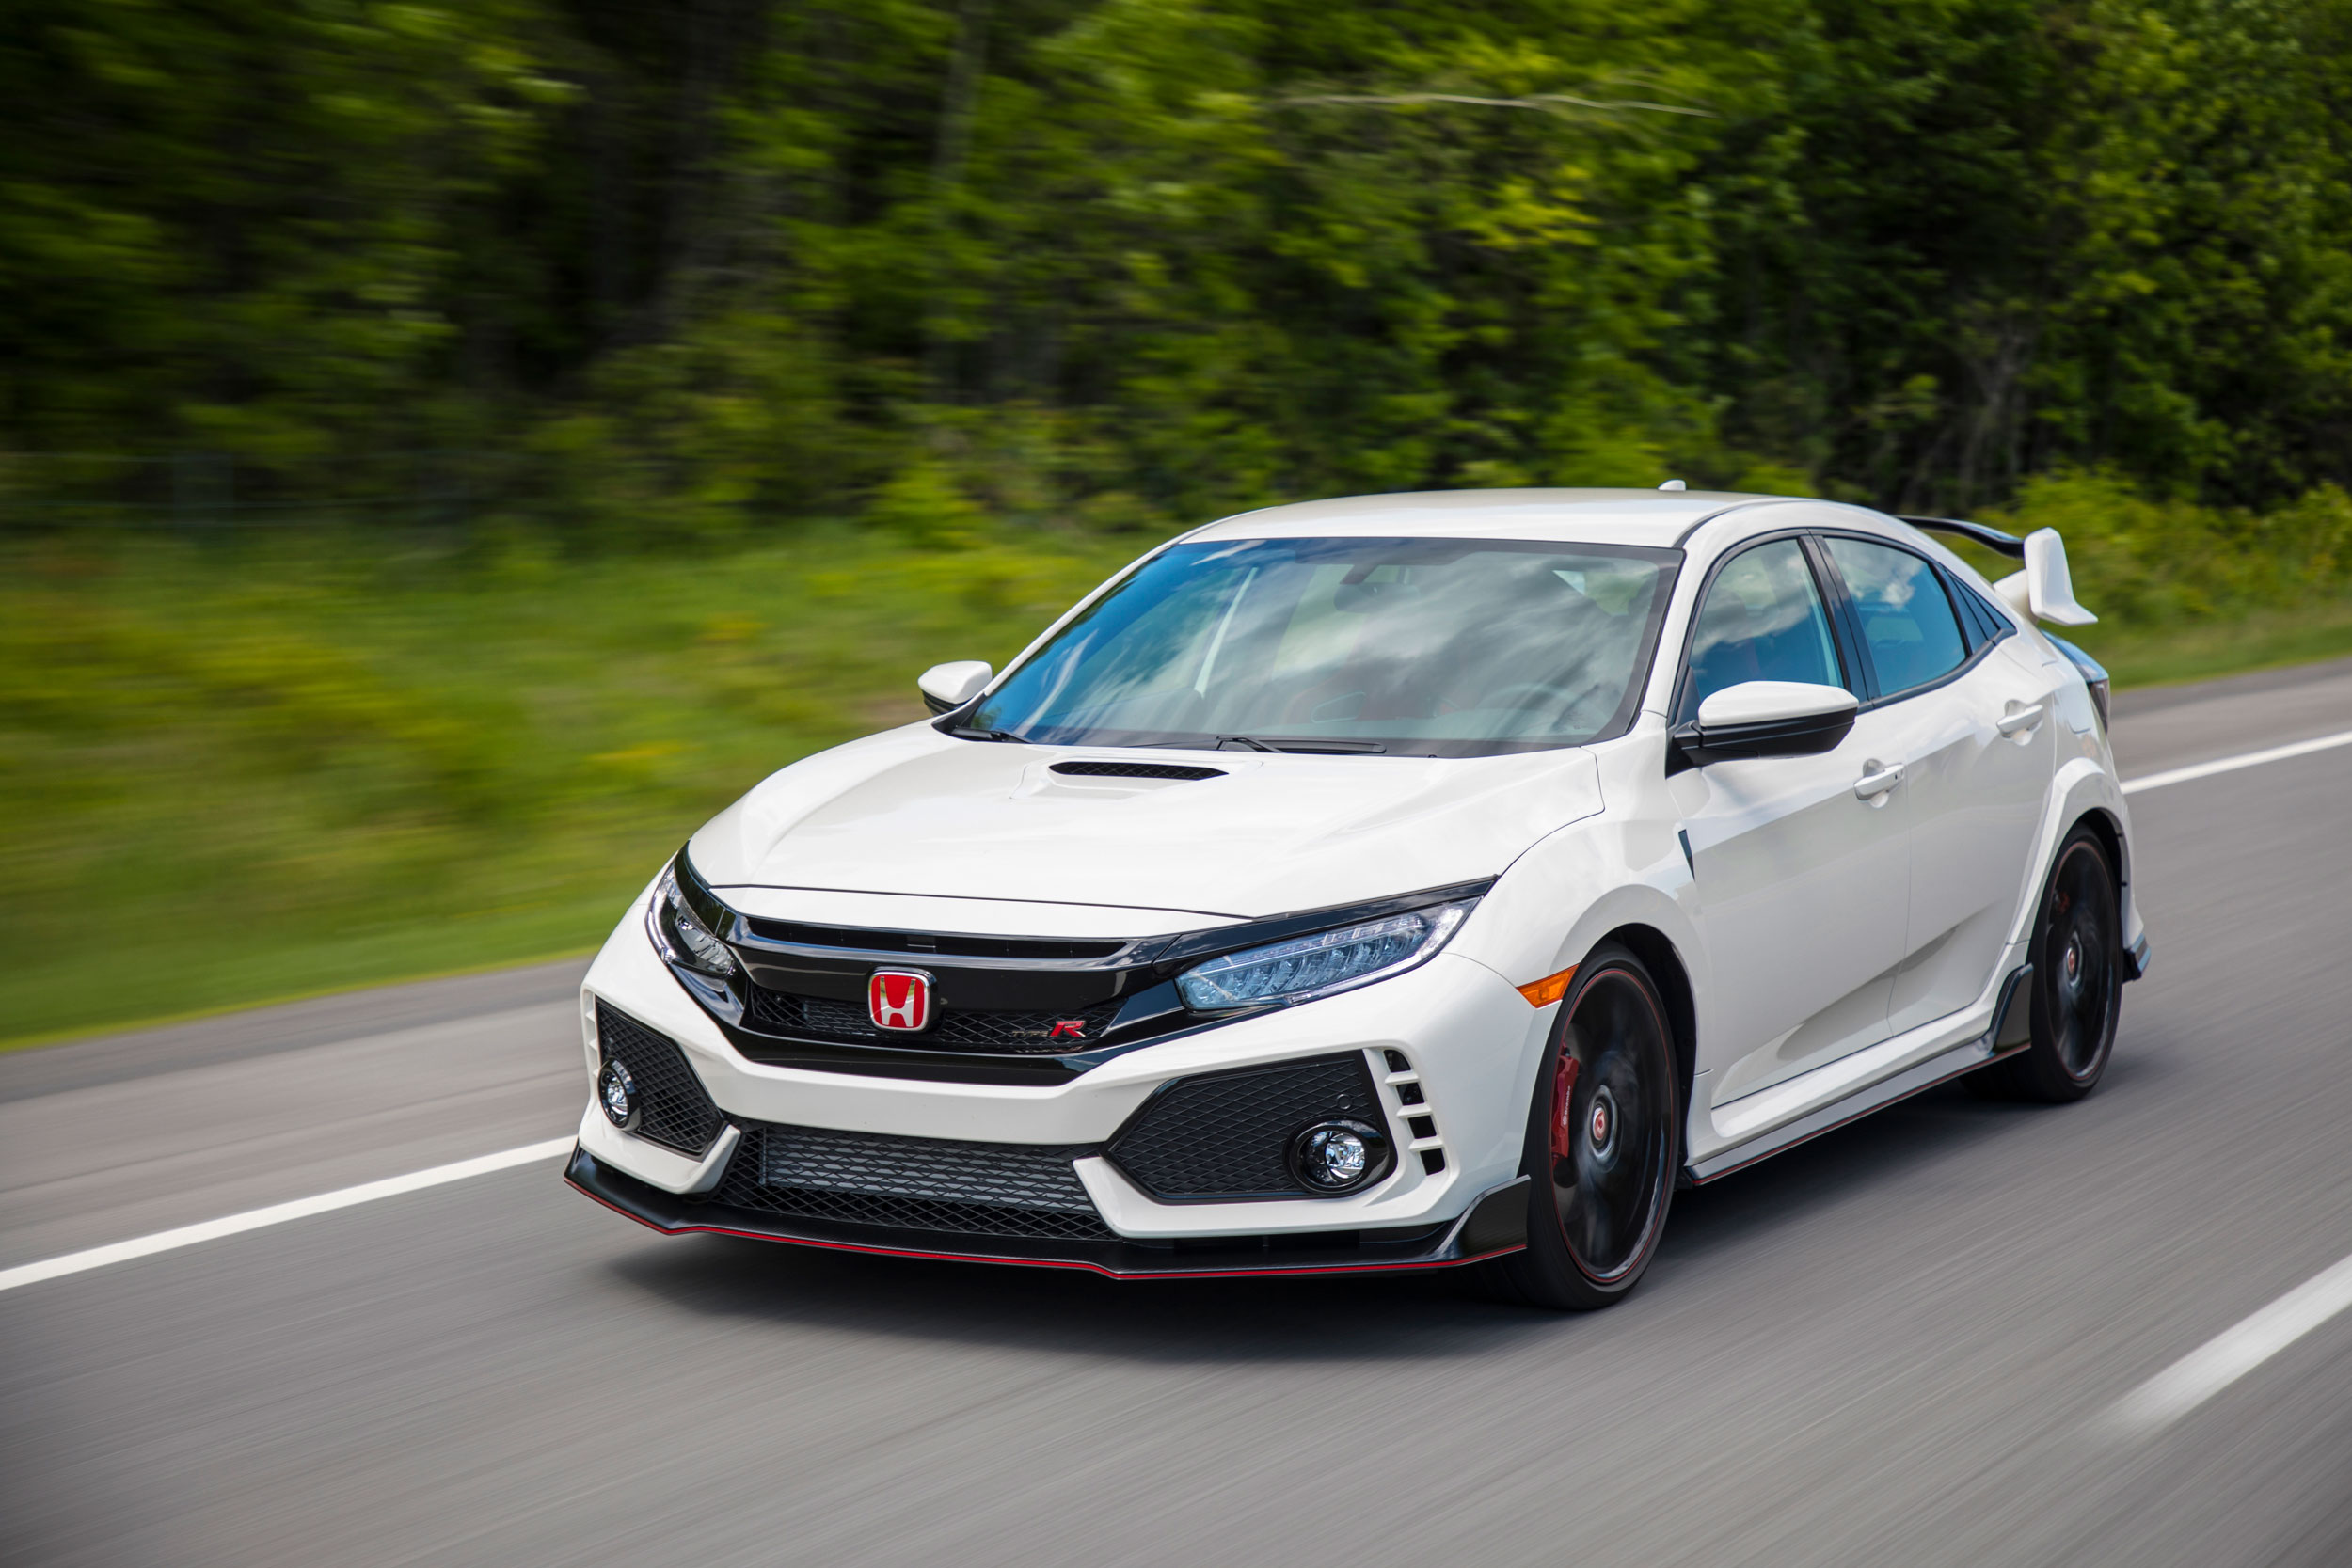 2019 Honda Civic Type-R front 3/4